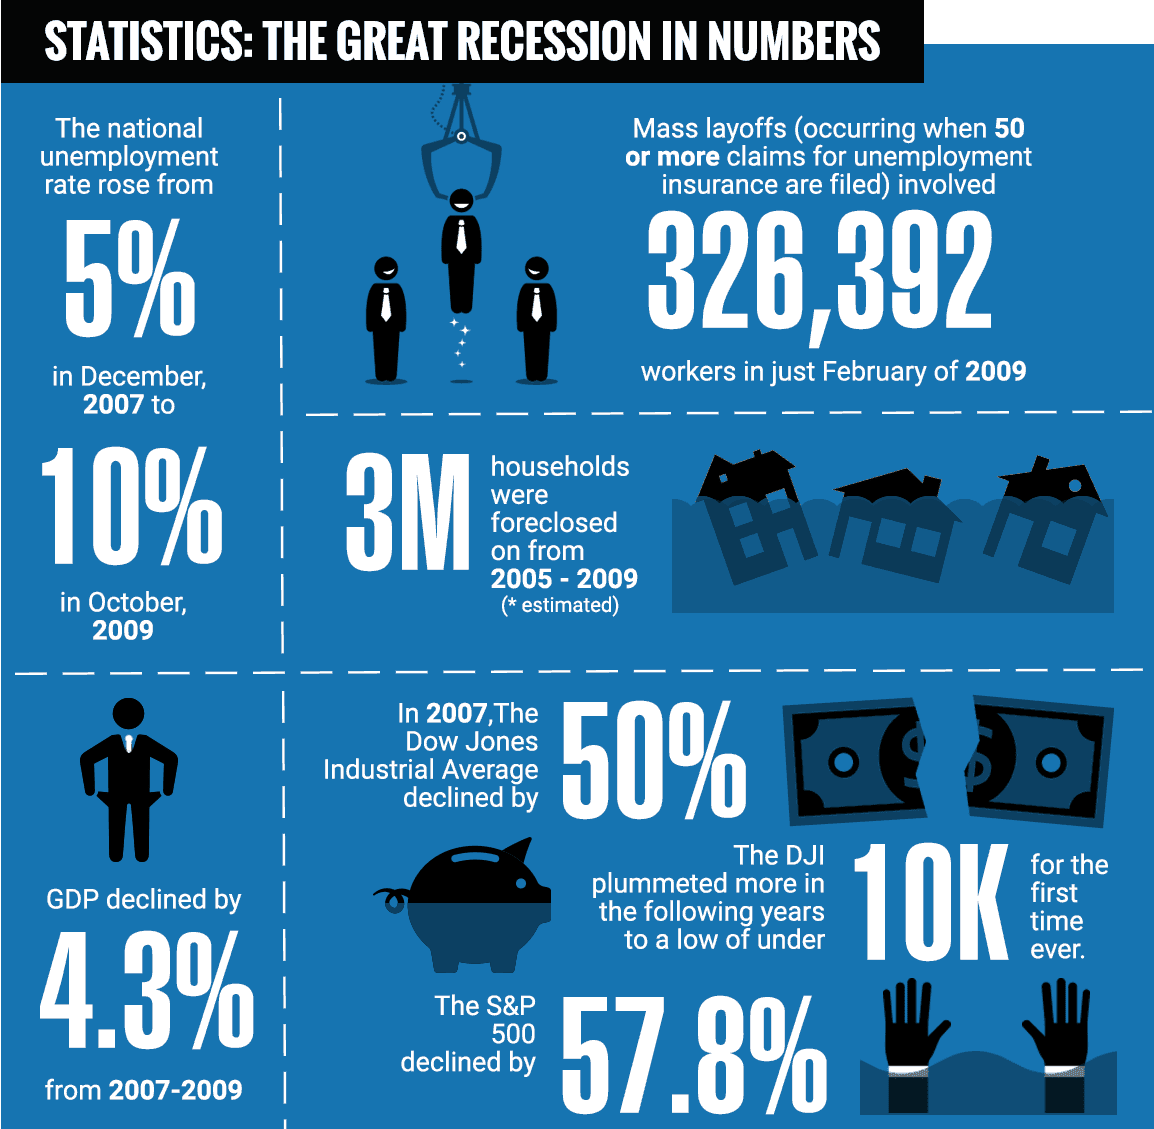 The Great Recession of 2008 in numbers